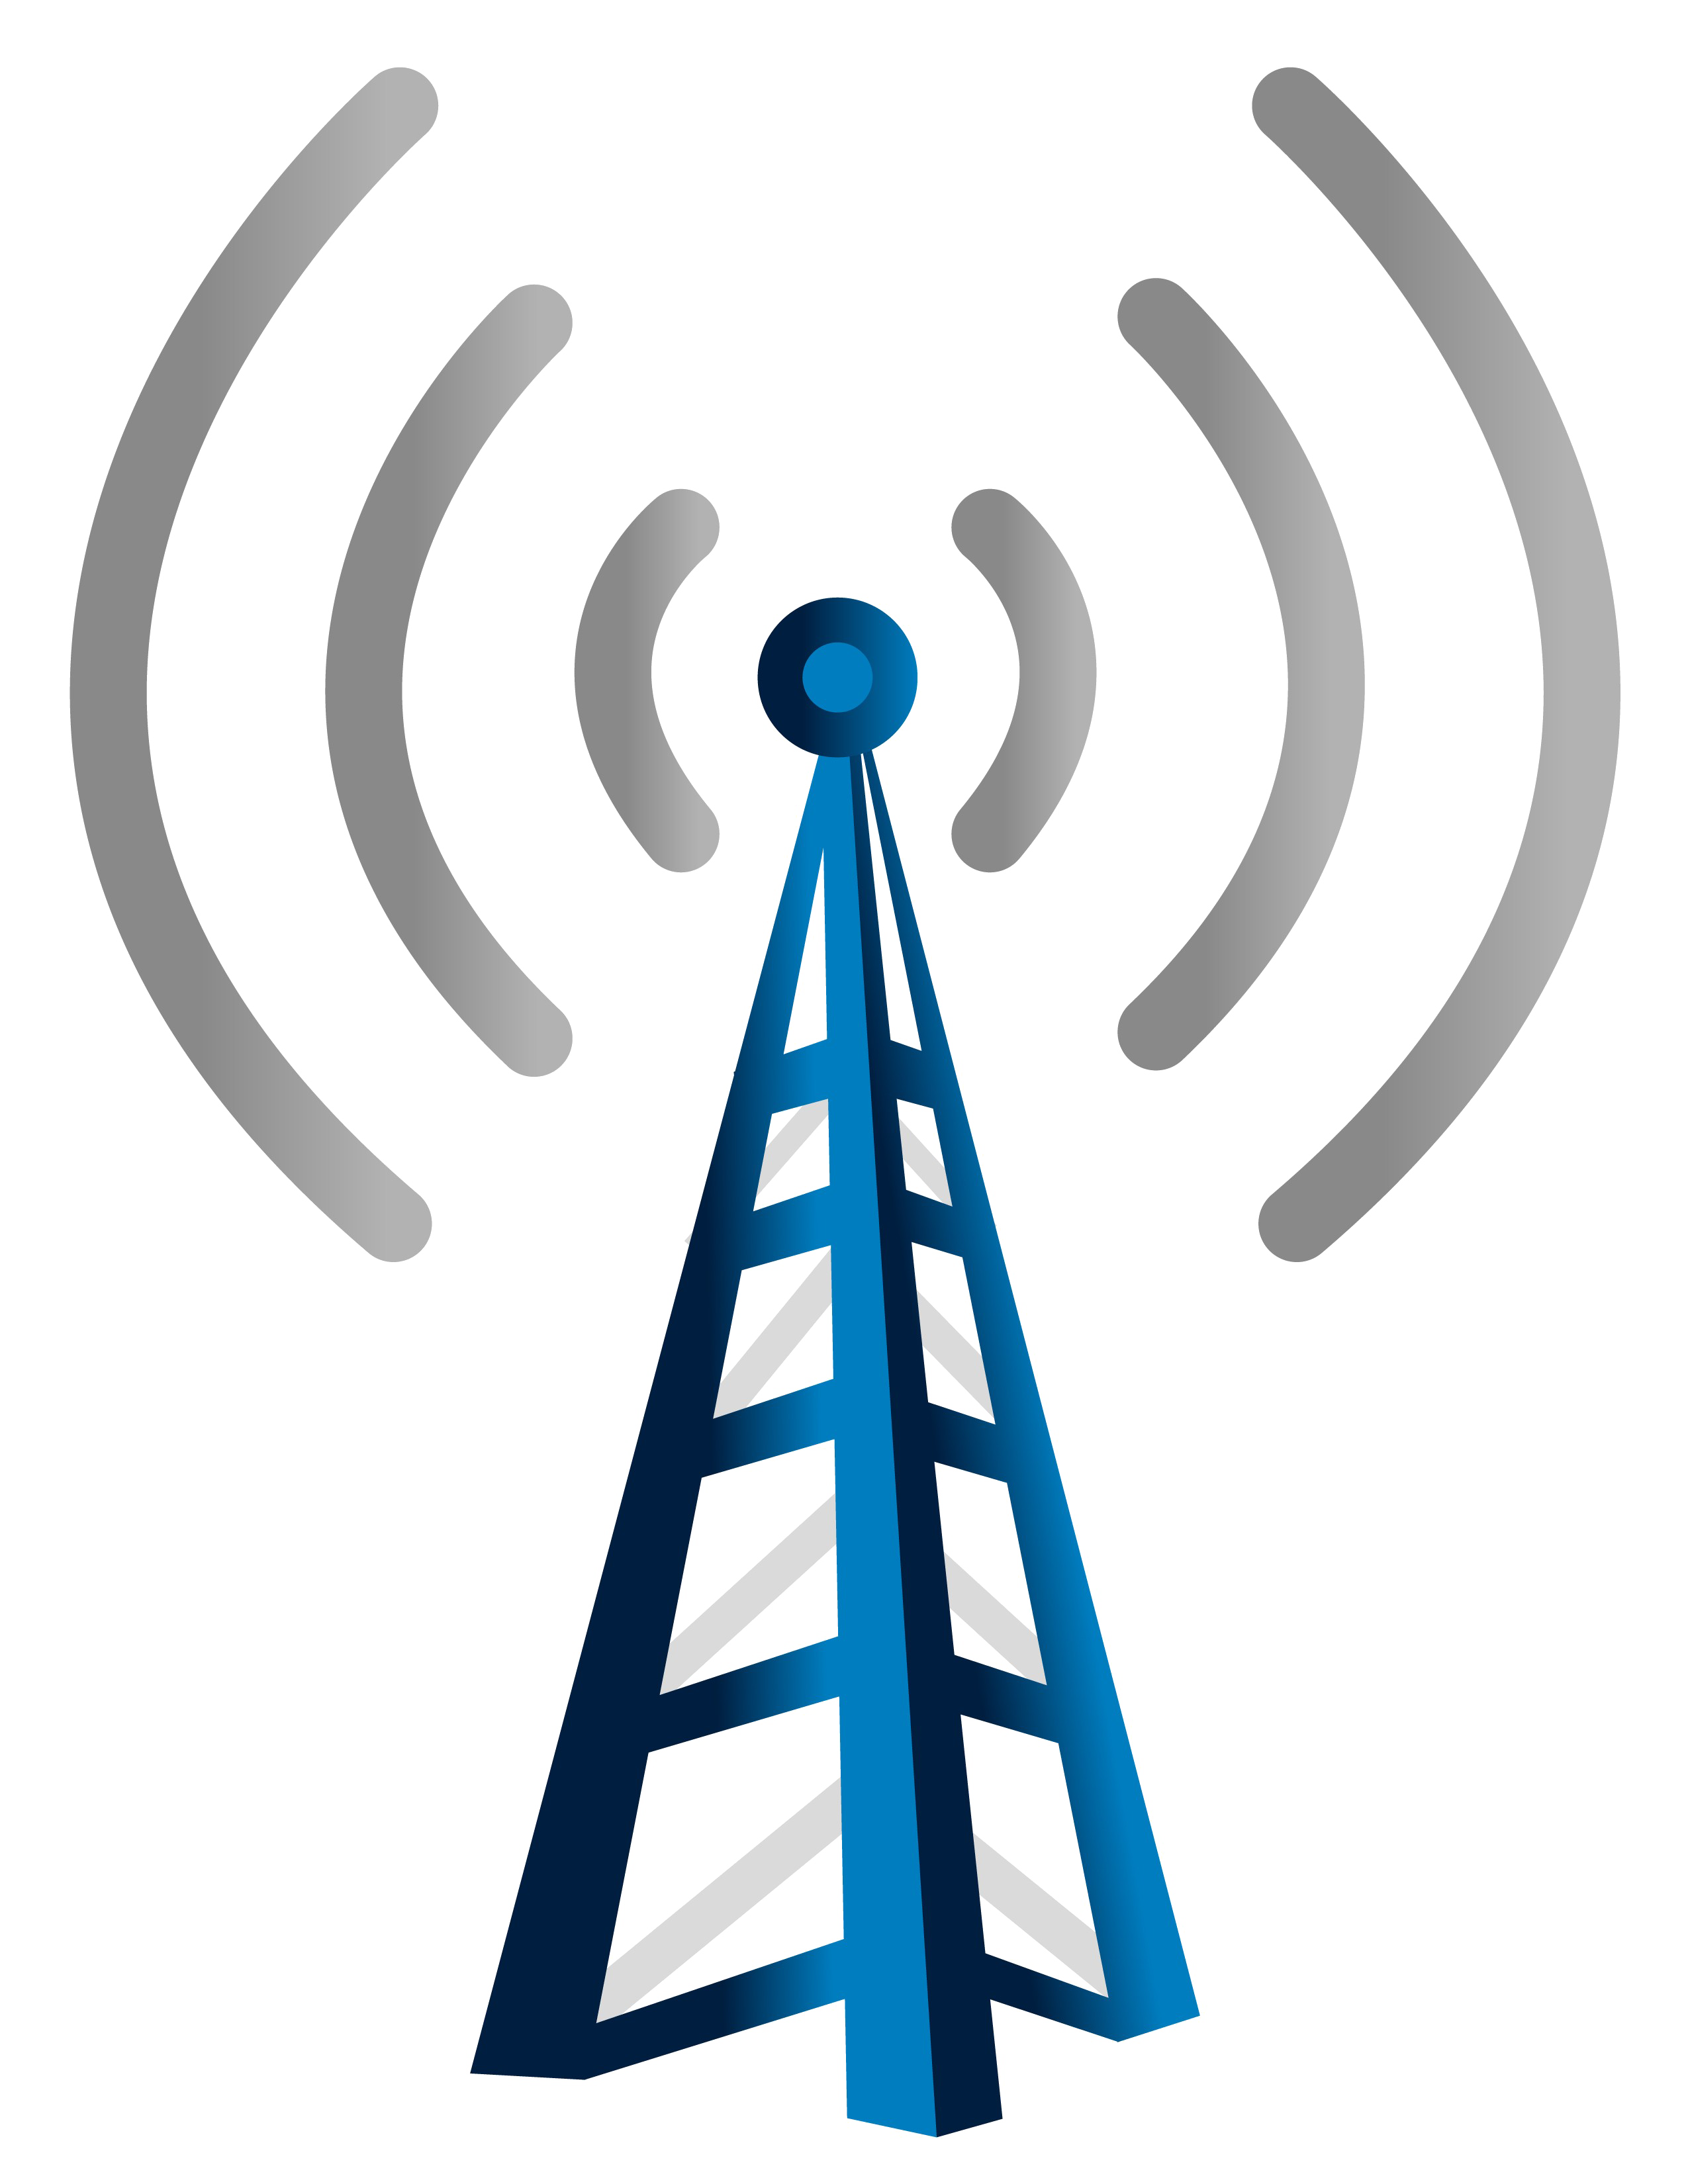 Tower PNG Images Transparent Free Download.